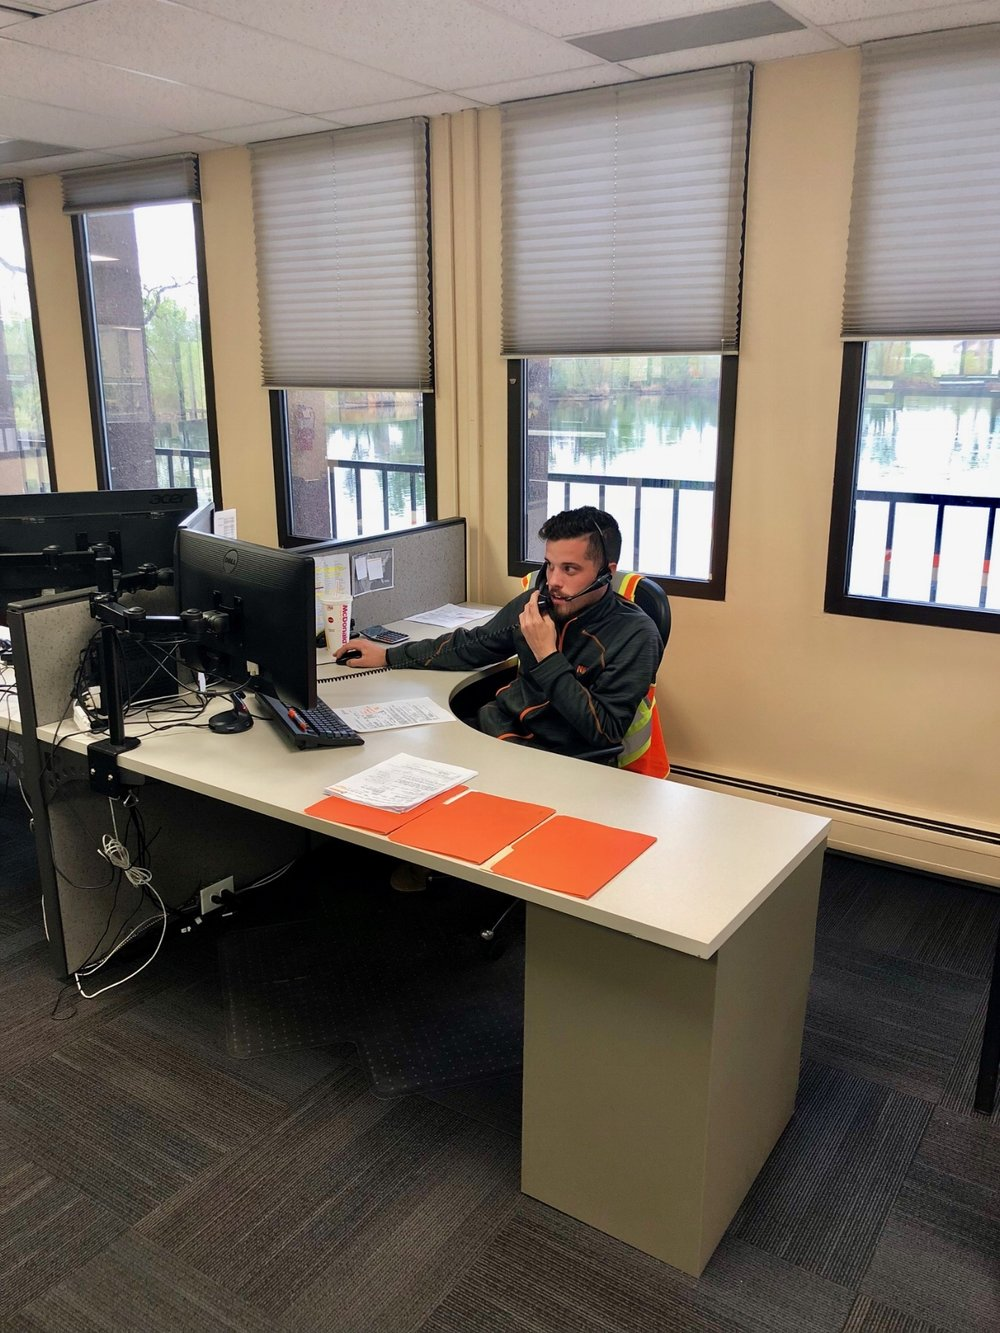 Our agent Joe hard at work!